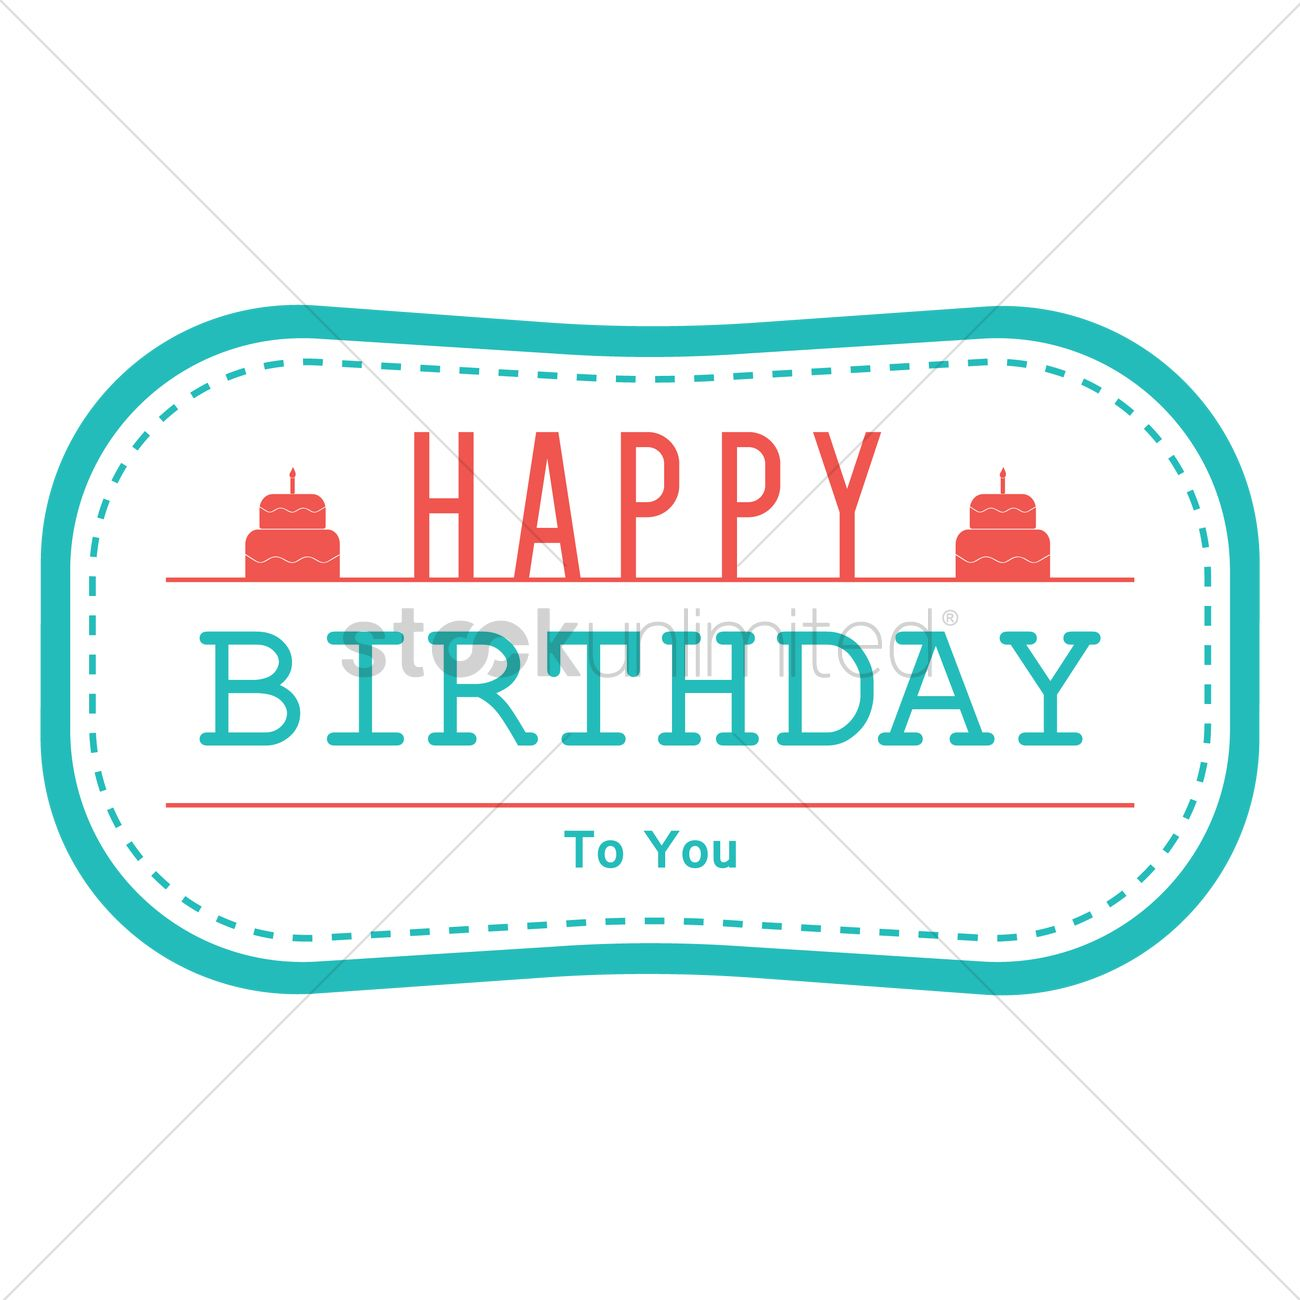 happy birthday address labels ; happy-birthday-label-design_1799693